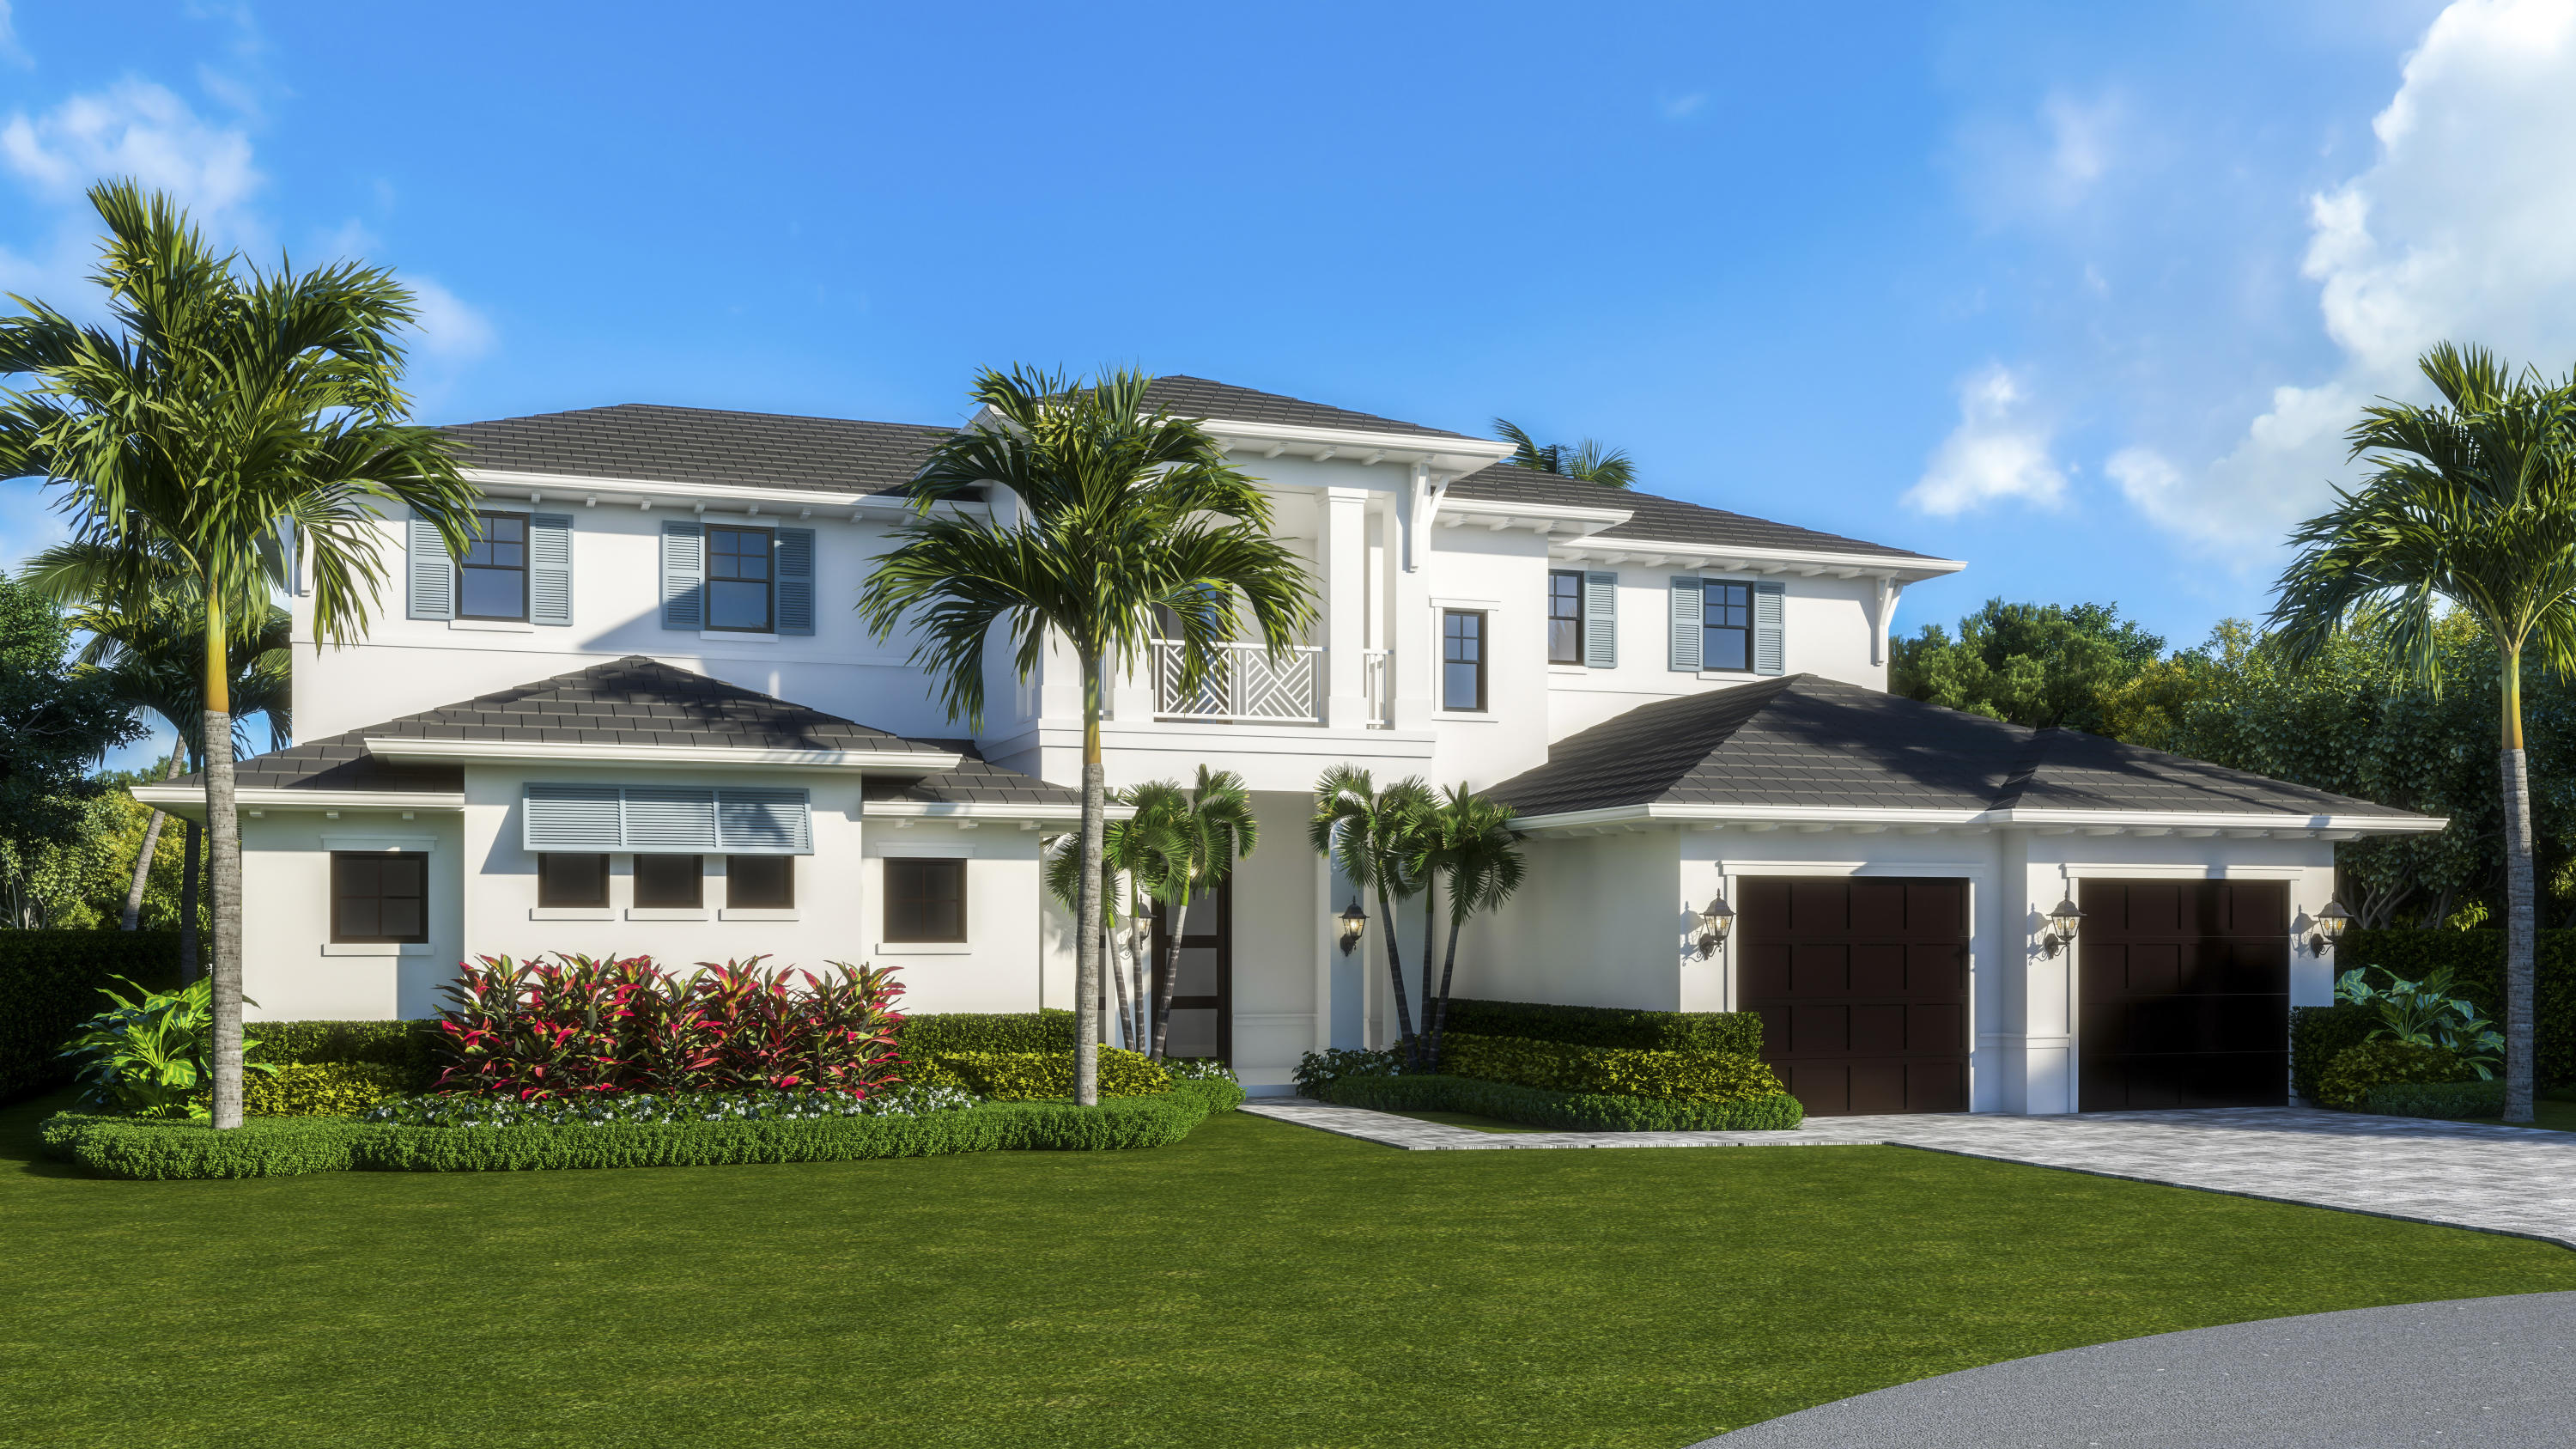 Waterfront New Construction Scheduled Completion Date October 2022. 5BR, one of which could serve as an Office, 5.1 BA, 2CG CBS home built with the finest and most Luxurious finishes (Floor Plans Attached).85' of water frontage on a deep wide water canal. 85' Trex dock with 15klb lift. Ocean access with no fixed bridges-only minutes to three waterfront restaurants. Abundant living space including great room, family room, formal dining room and dual master suites. 15' X 45'' heated pool/spa. A dream gourmet kitchen offers a Wolf 6 burner sealed Gas stainless steel cooktop, Wolf stainless steel 30'' built in double convection ovens, SubZero 48'' fridge/freezer and dual Bosch dishwashers and a spacious pantry. The kitchen features hand-made custom cabinets with a large island...see supplement This home offers a grand entrance with double mahogany/glass style doors & marble floors and beautiful staircase opening to the great room. Several rooms feature beautiful ceiling details. The living areas on both floors are finished with high quality engineered wood floors. The home is being built with the best quality materials and workmanship including high impact hurricane windows and doors. There are large sliding doors in all the rooms facing the water letting in lots of natural light and giving a beautiful view of the pool, the water and your boat. The house is perfect for entertaining with a wonderful flow from the indoors to the outdoors.  The downstairs master suite includes oversized his & her closets, a spacious bathroom with a built-in dressing table, dual shower, soaking tub, and separate toilet rooms all finished in the highest quality marble and quartz. The upstairs boasts a spacious master suite with a large deck overlooking the pool and the water. Three additional upstairs bedrooms are all ensuites with luxury finishes and large walk-in closets also open out to the large deck. There is a day kitchen with sink and refrigerator in the gallery. Additional features include a large veranda with summer kitchen. This home is architect designed and has a West Indies flare with many contemporary features and includes new lush tropical landscaping.  The photos illustrated are virtually staged renderings along with photos of a prior project completed at 2389 Azure Cir Palm Beach Gardens Fl 33410.